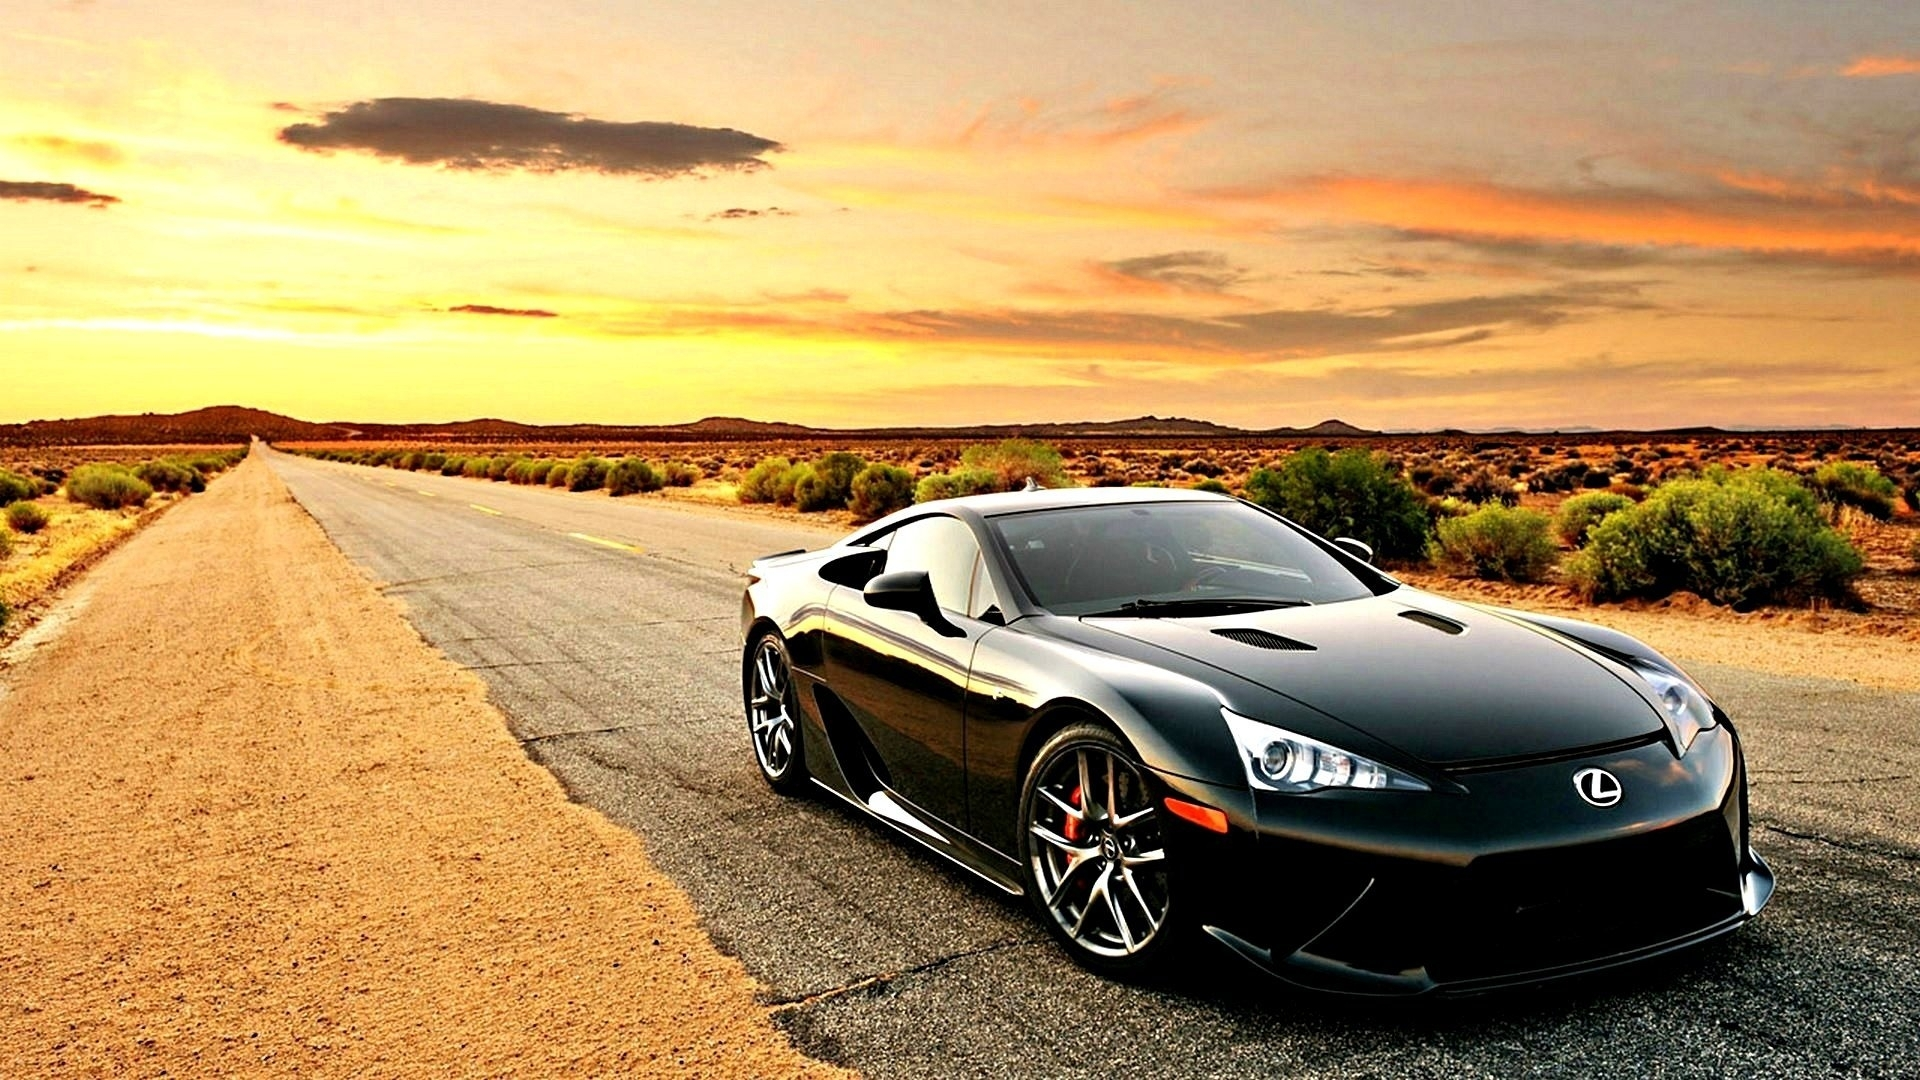 10 Most Popular Lexus Lfa Wallpaper 1920X1080 FULL HD 1080p For PC Background